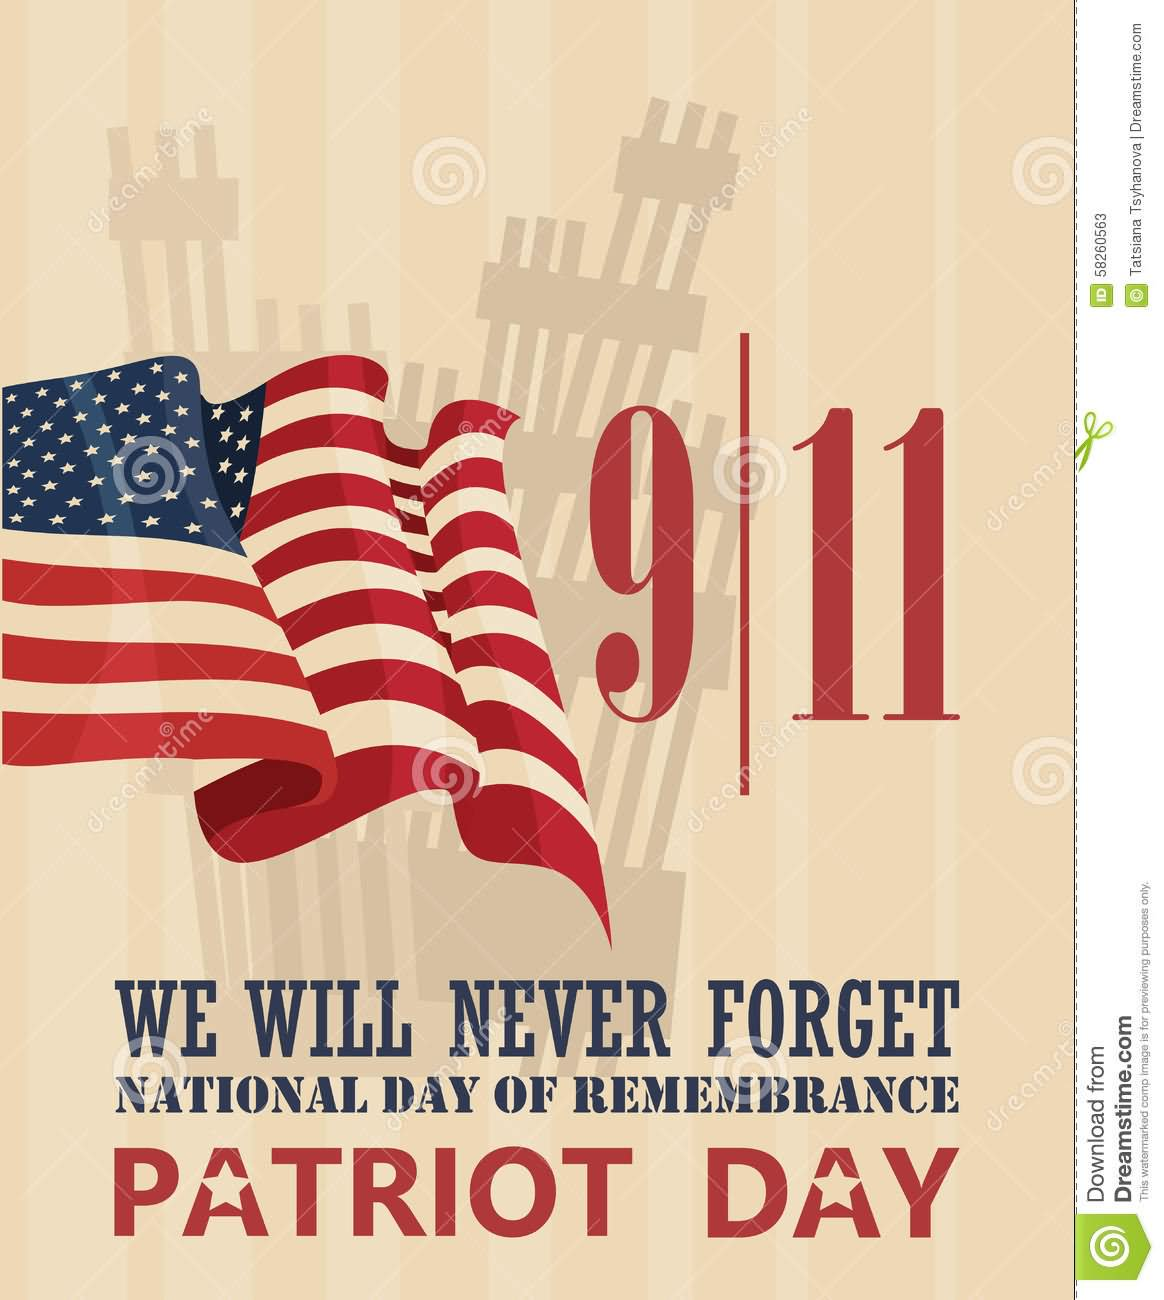 50 Wonderful Patriot Day 2016 Wish Pictures And Photos.